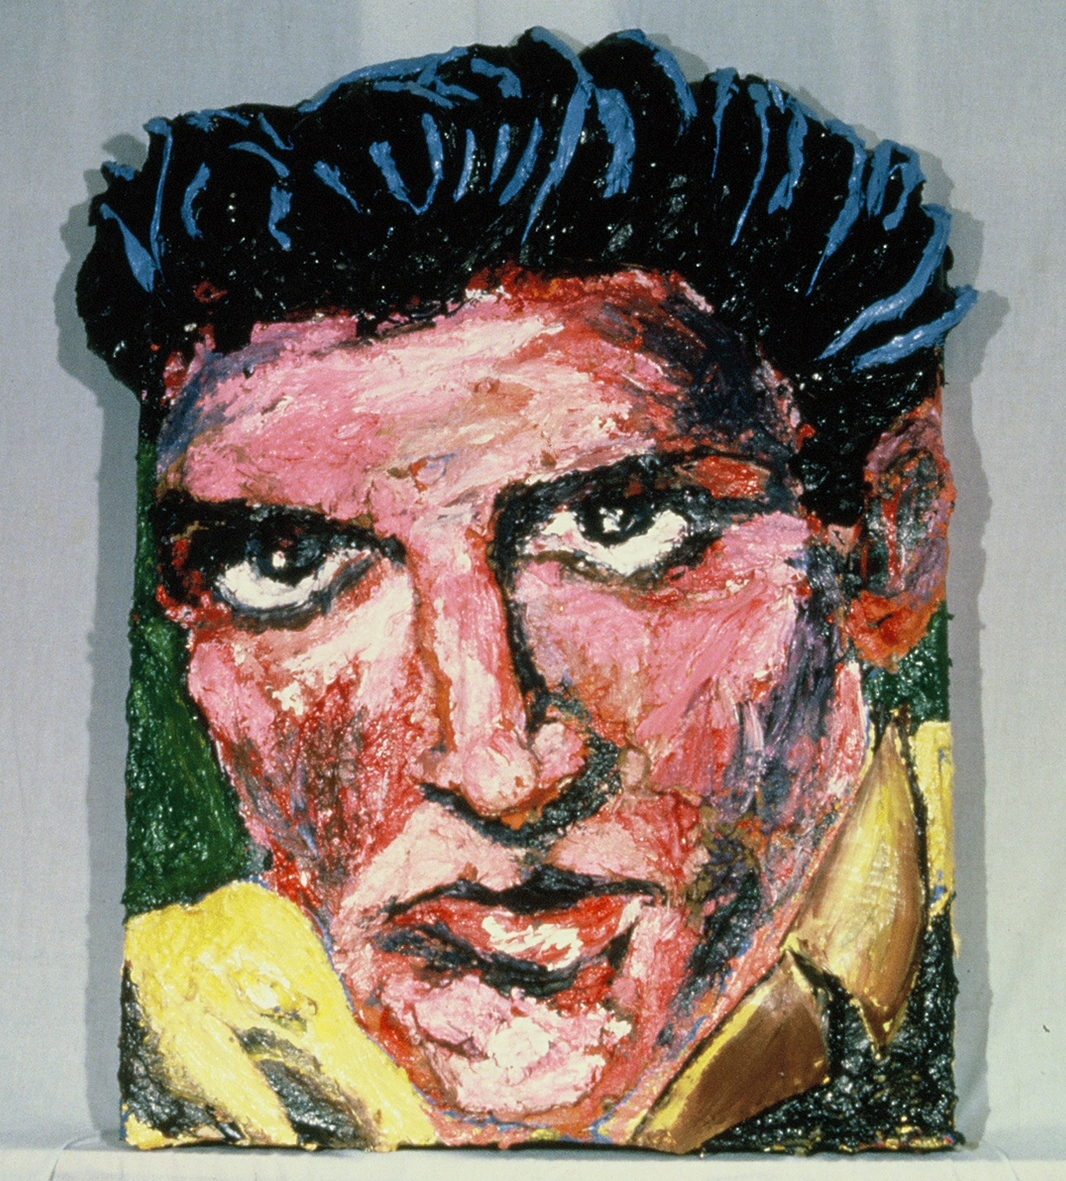 Built-Out Portrait of Elvis Presley by Artist Brett Stuart Wilson, in the Sylvio Perlstein Collection